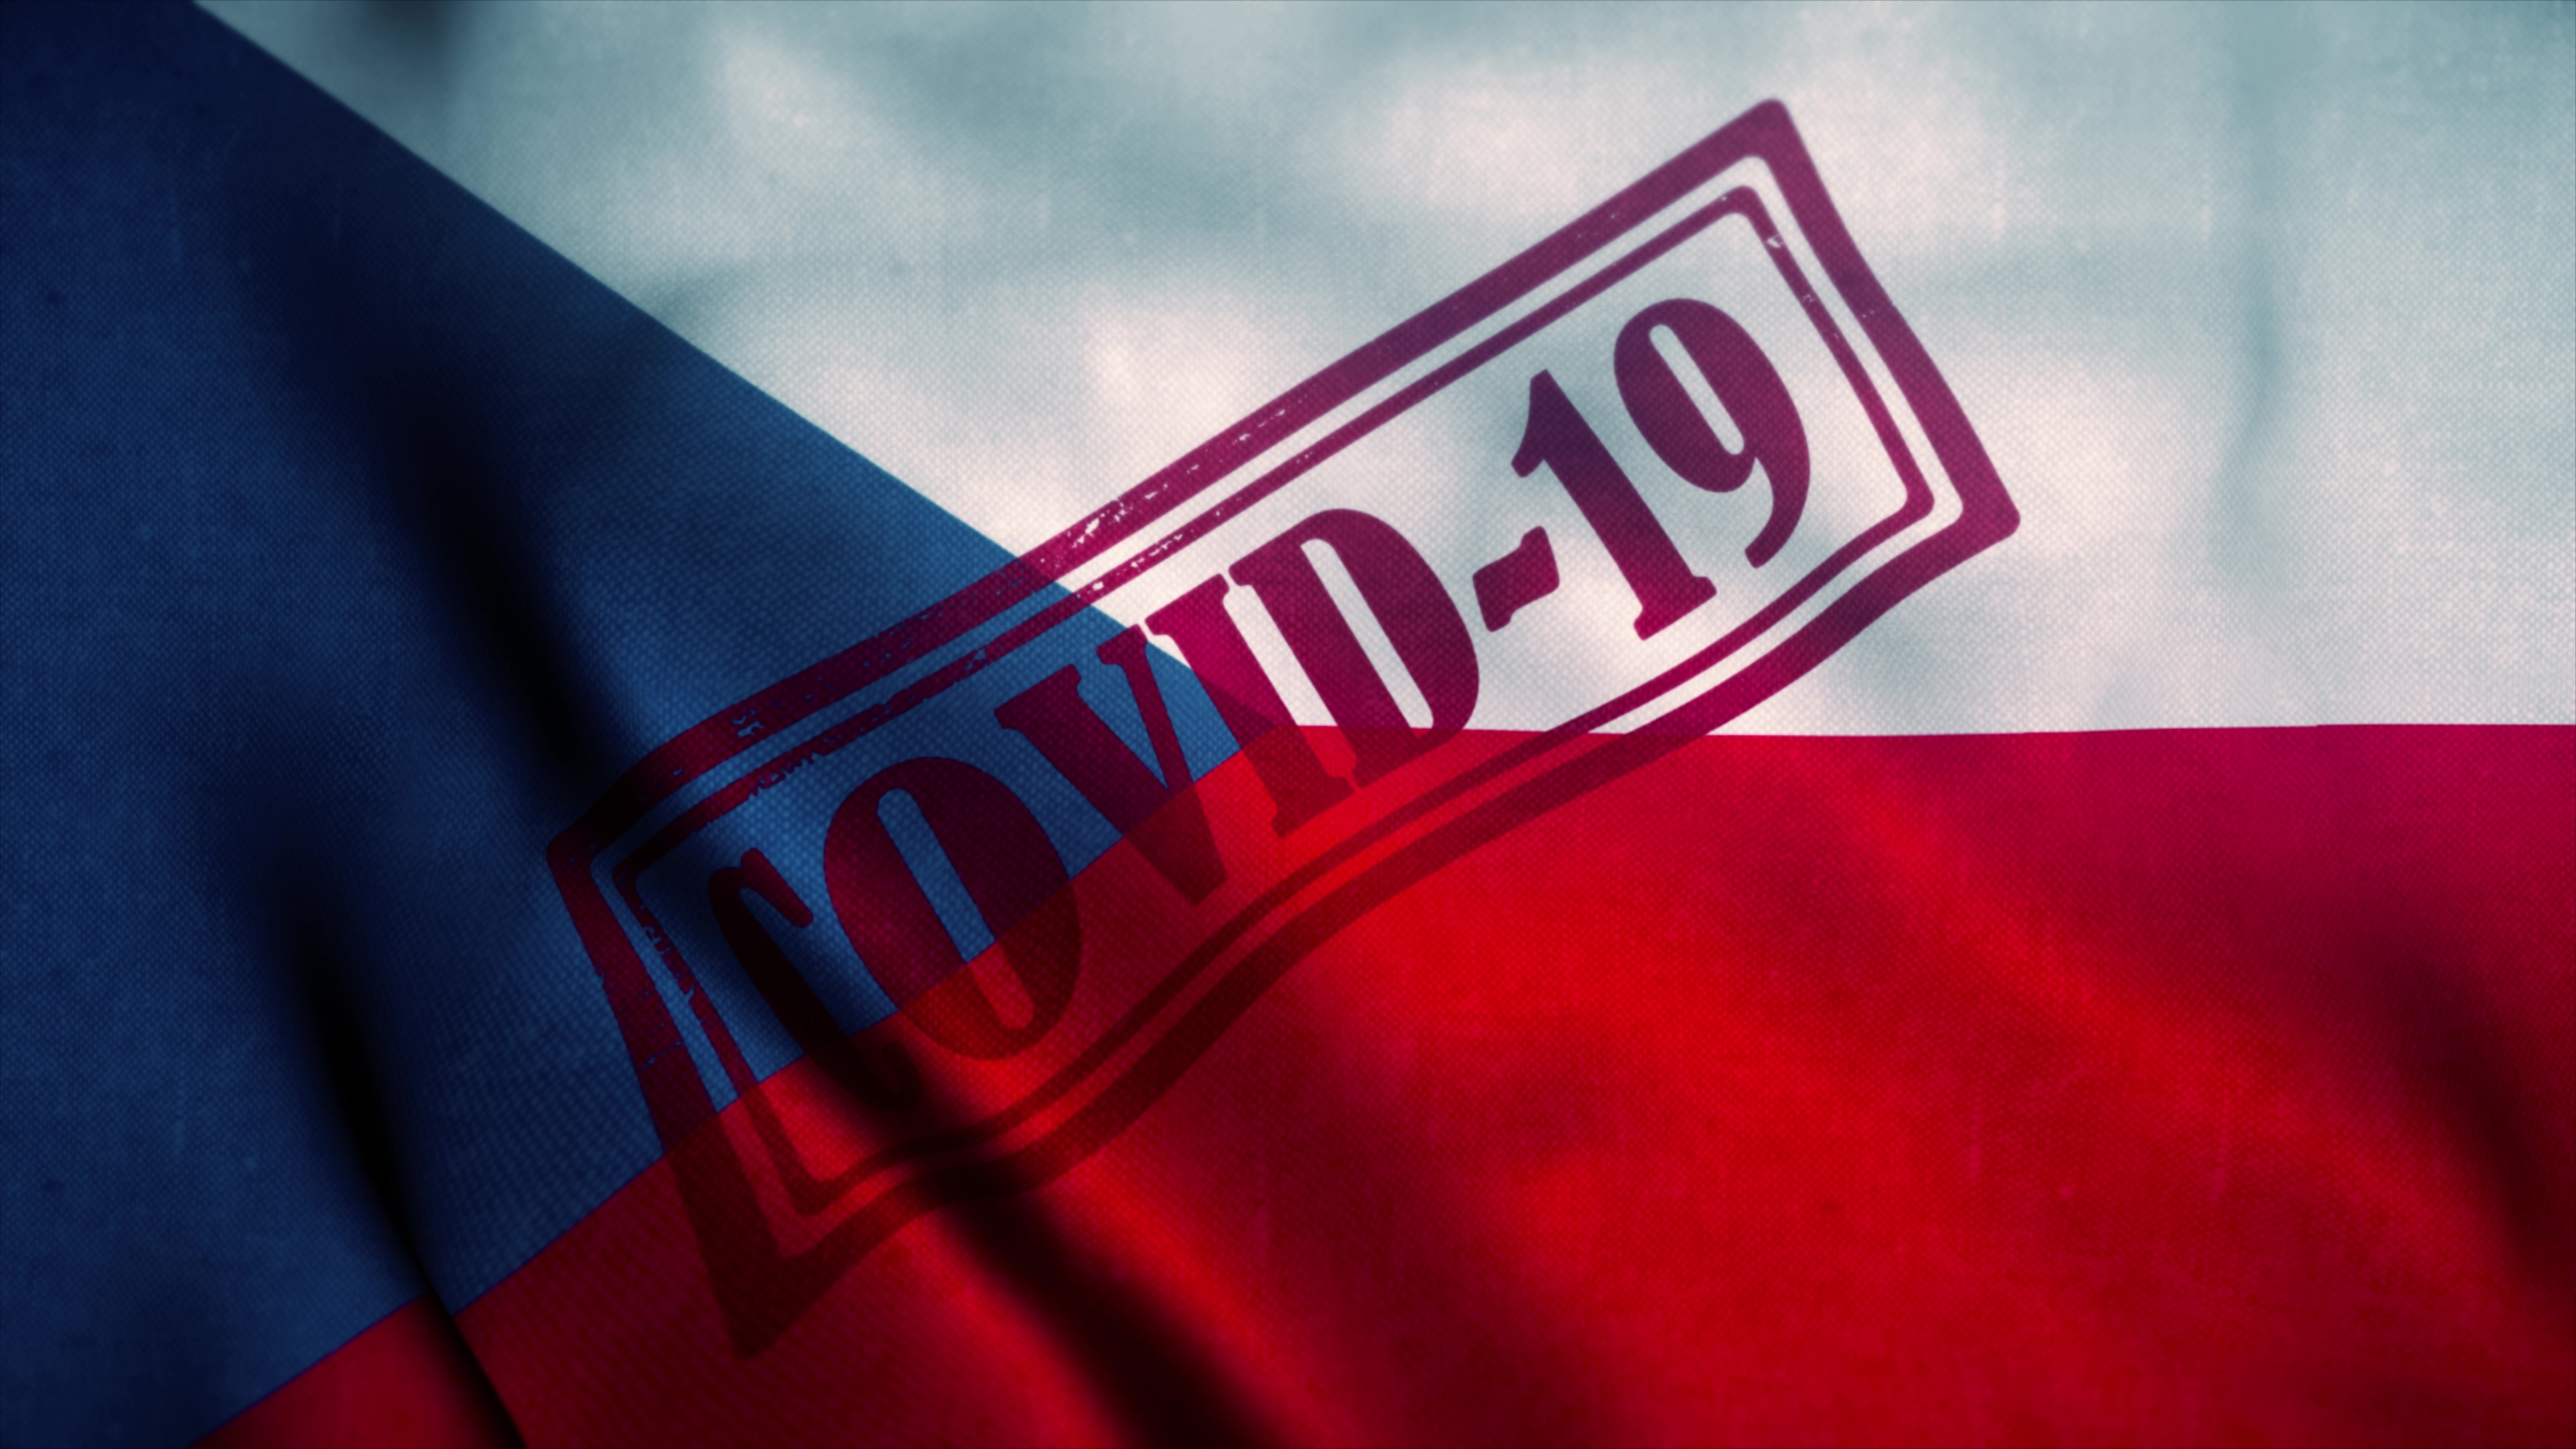 COVID-19 in Czech Republic: State of emergency and economic prospects